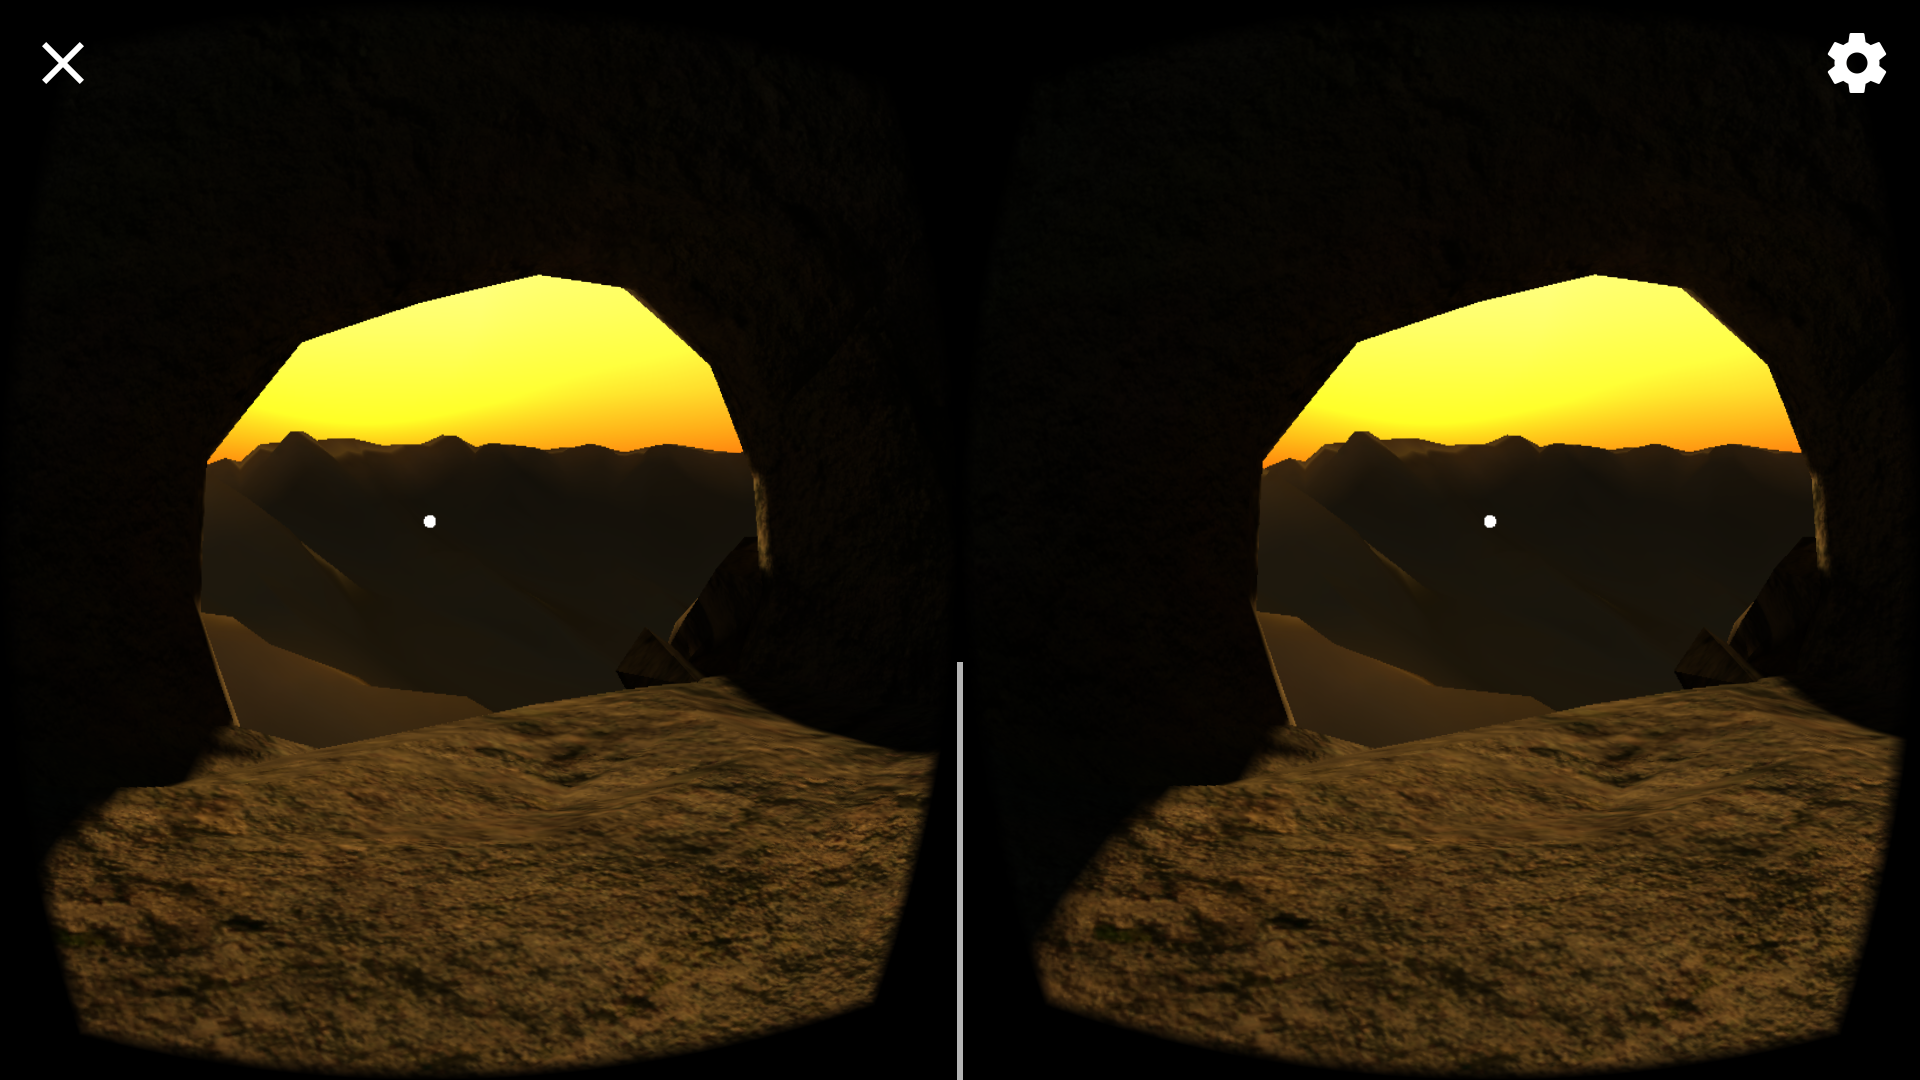 VR Cave